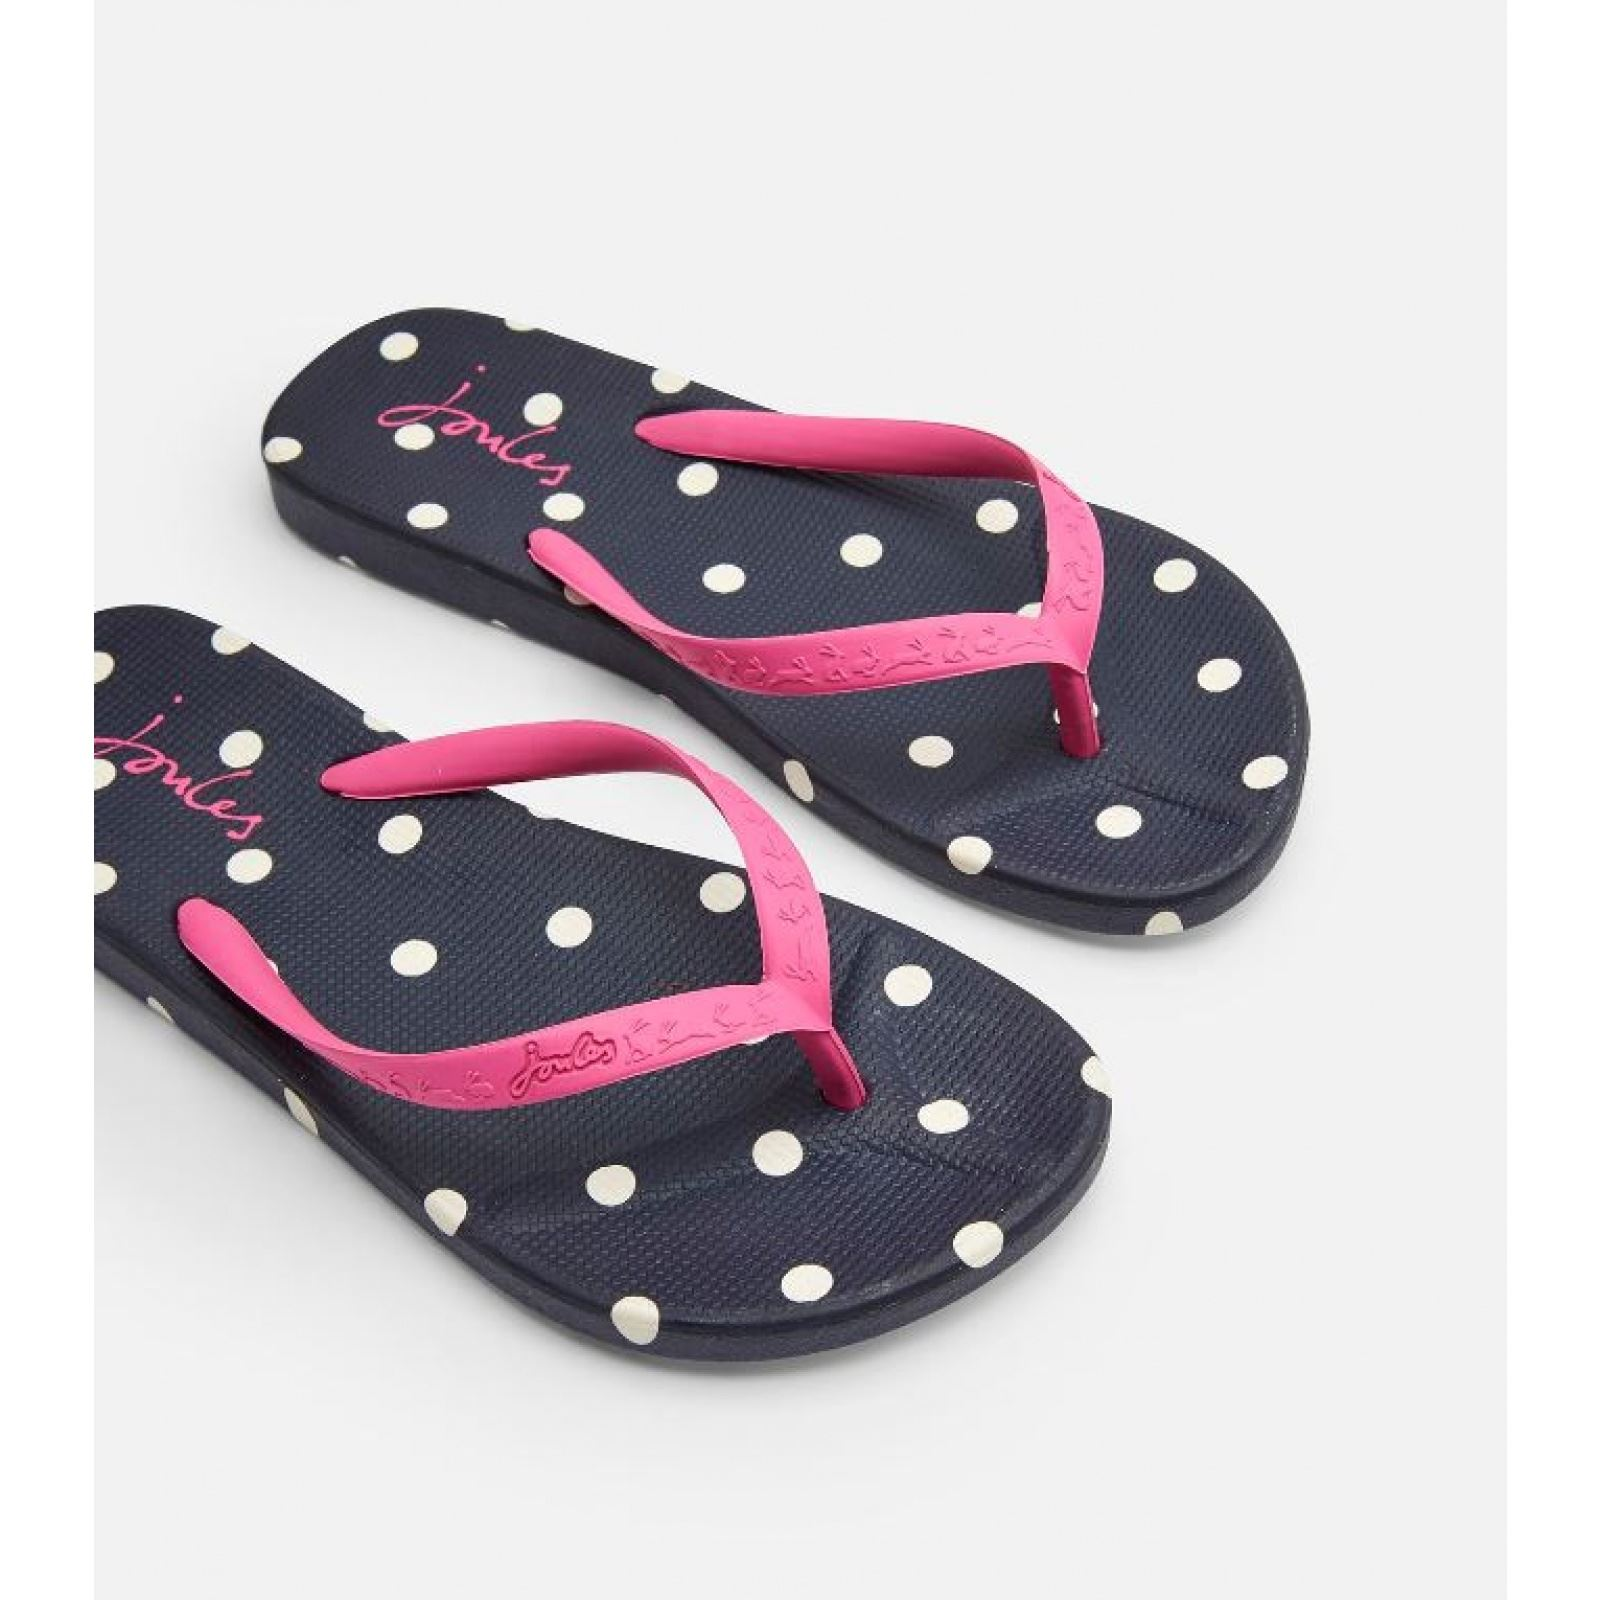 Joules-Flip-Flops-Sandals-Summer-Flip-Flop-NEW-2019-COLOURS thumbnail 13